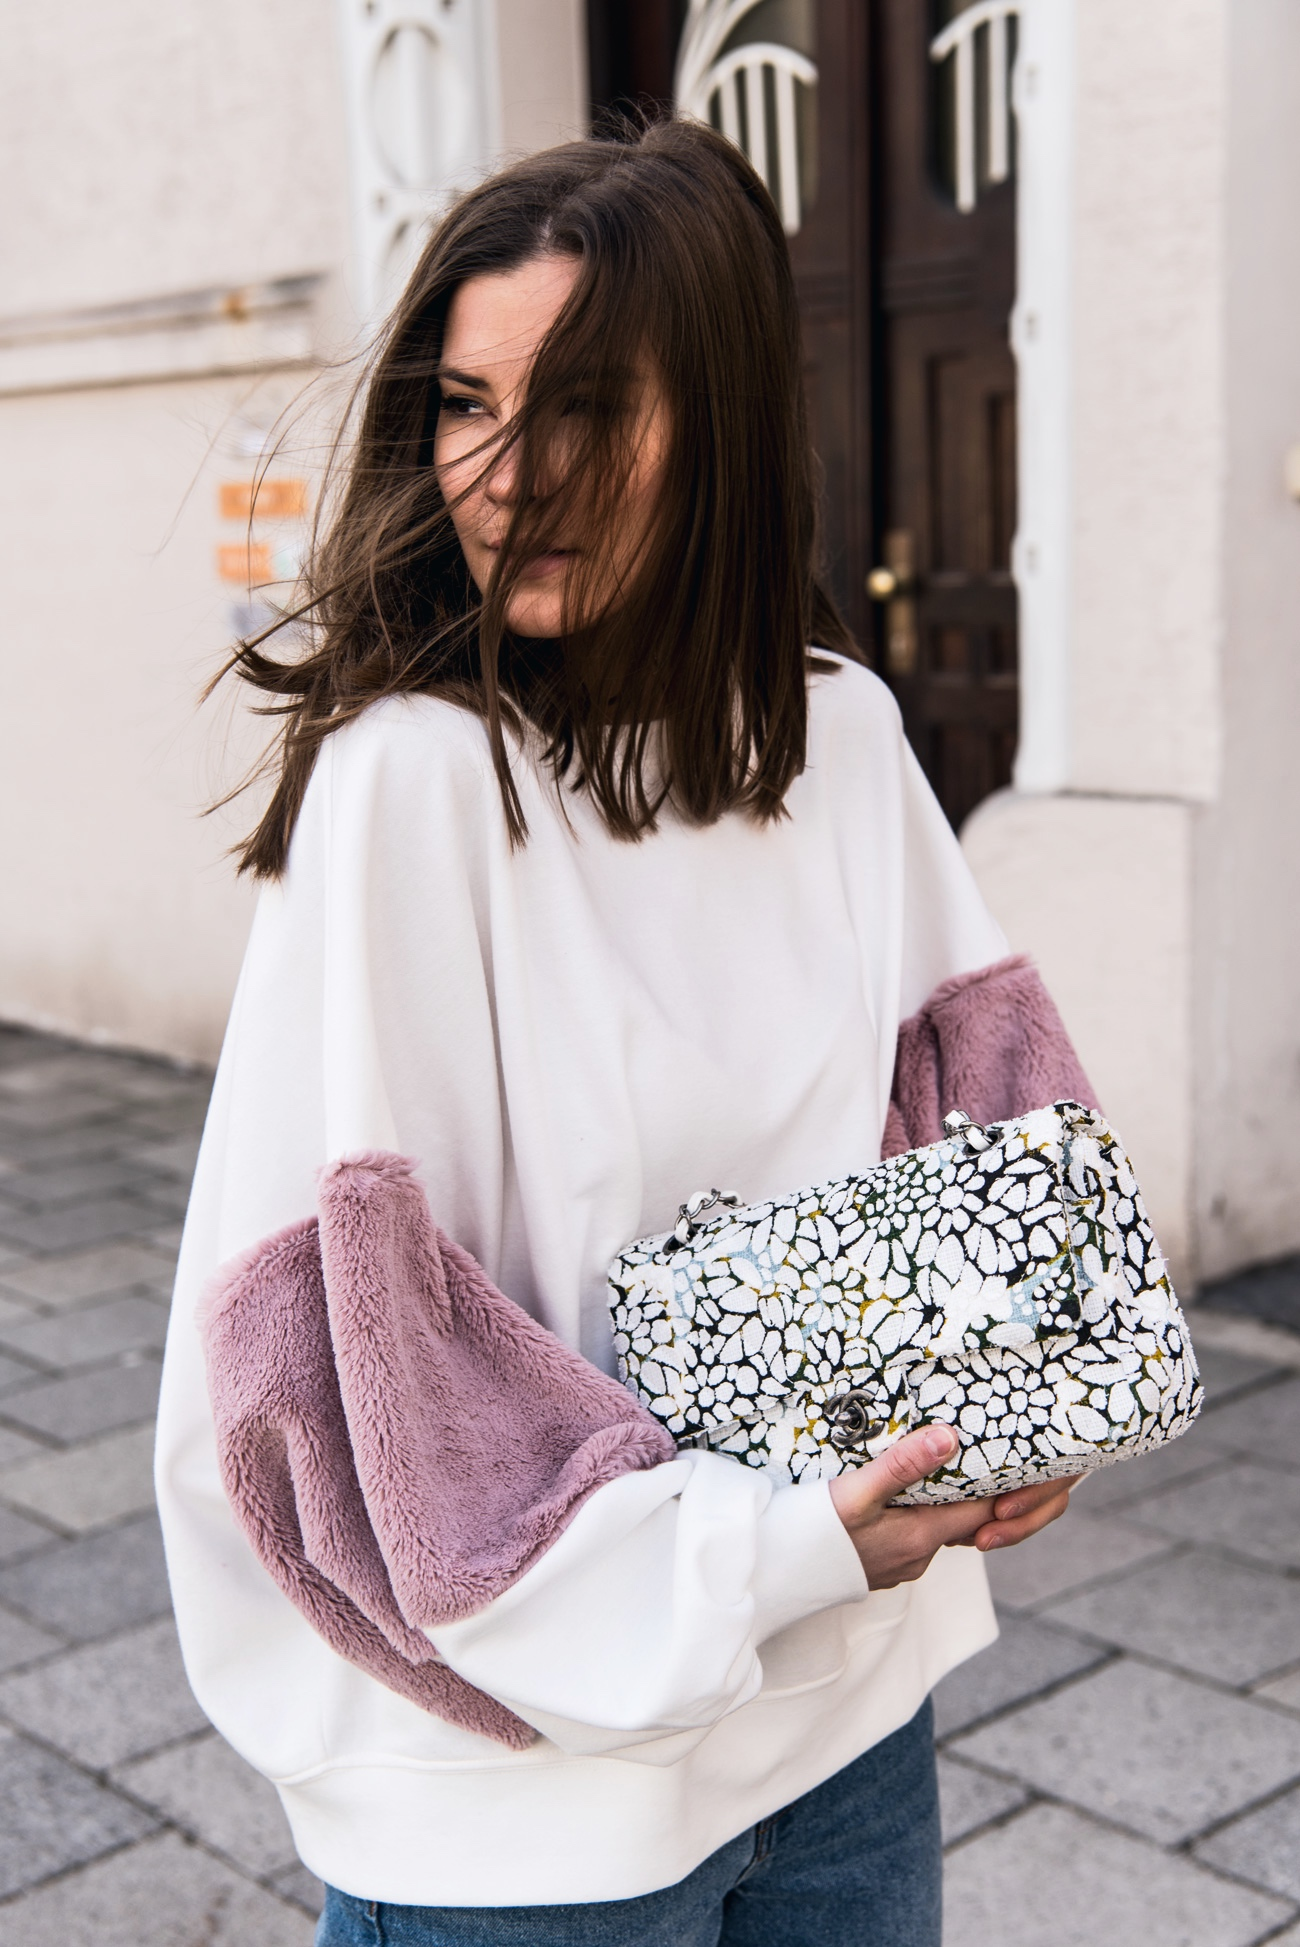 german-fashion-and-lifetyle-blog-munich-fashion-influencer-germany-fashiioncarpet